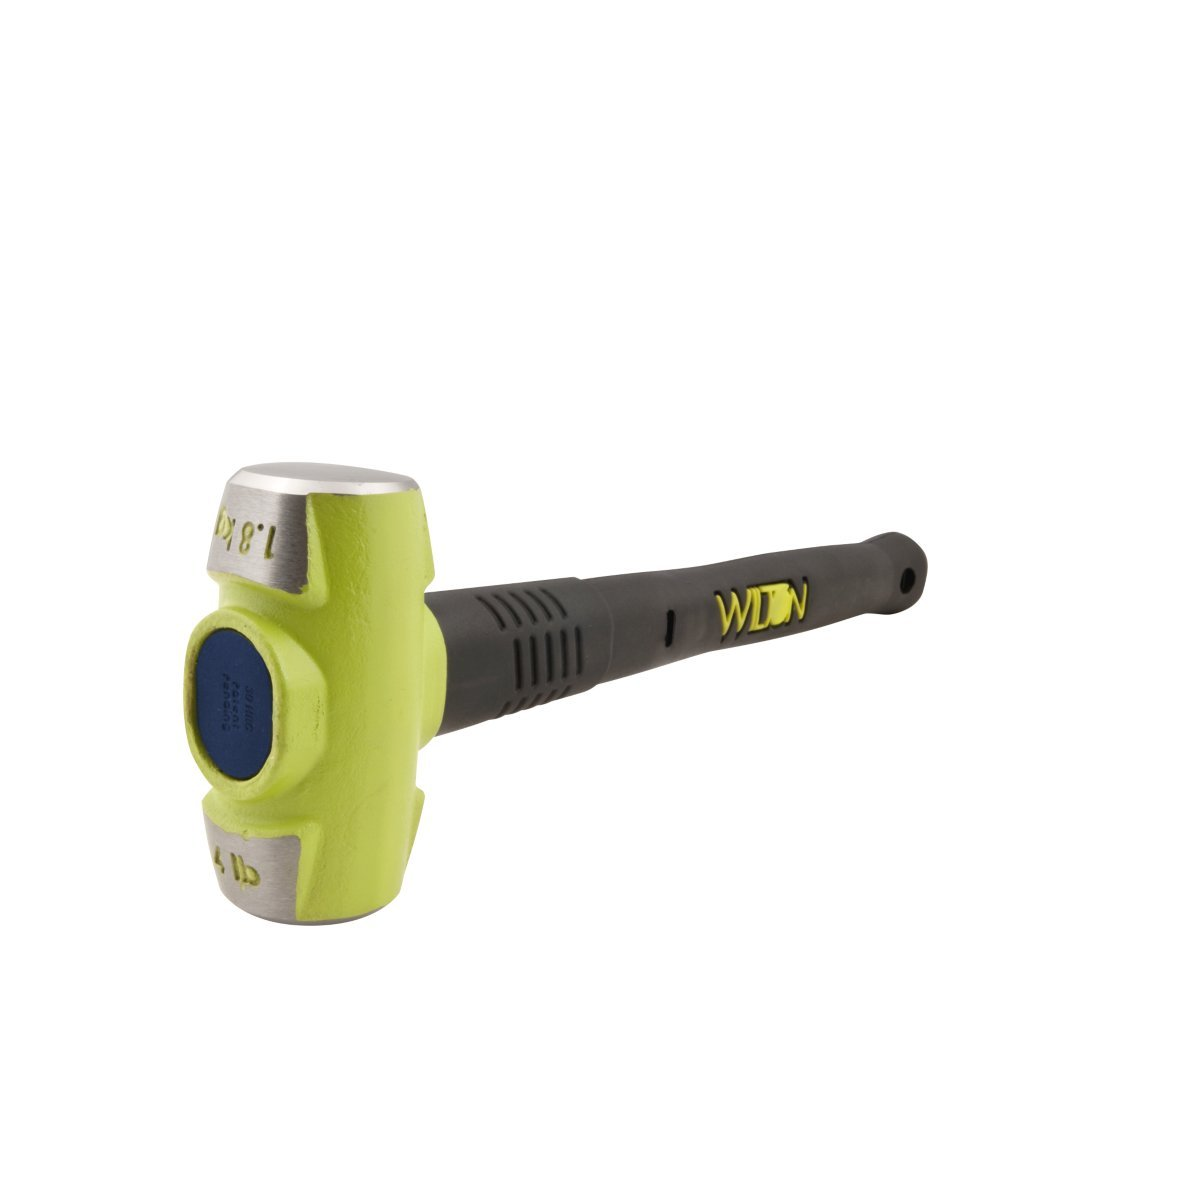 Wilton 40416 4 lb. BASH Soft Face Sledge Hammer with 16-in Unbreakable Handle by Wilton